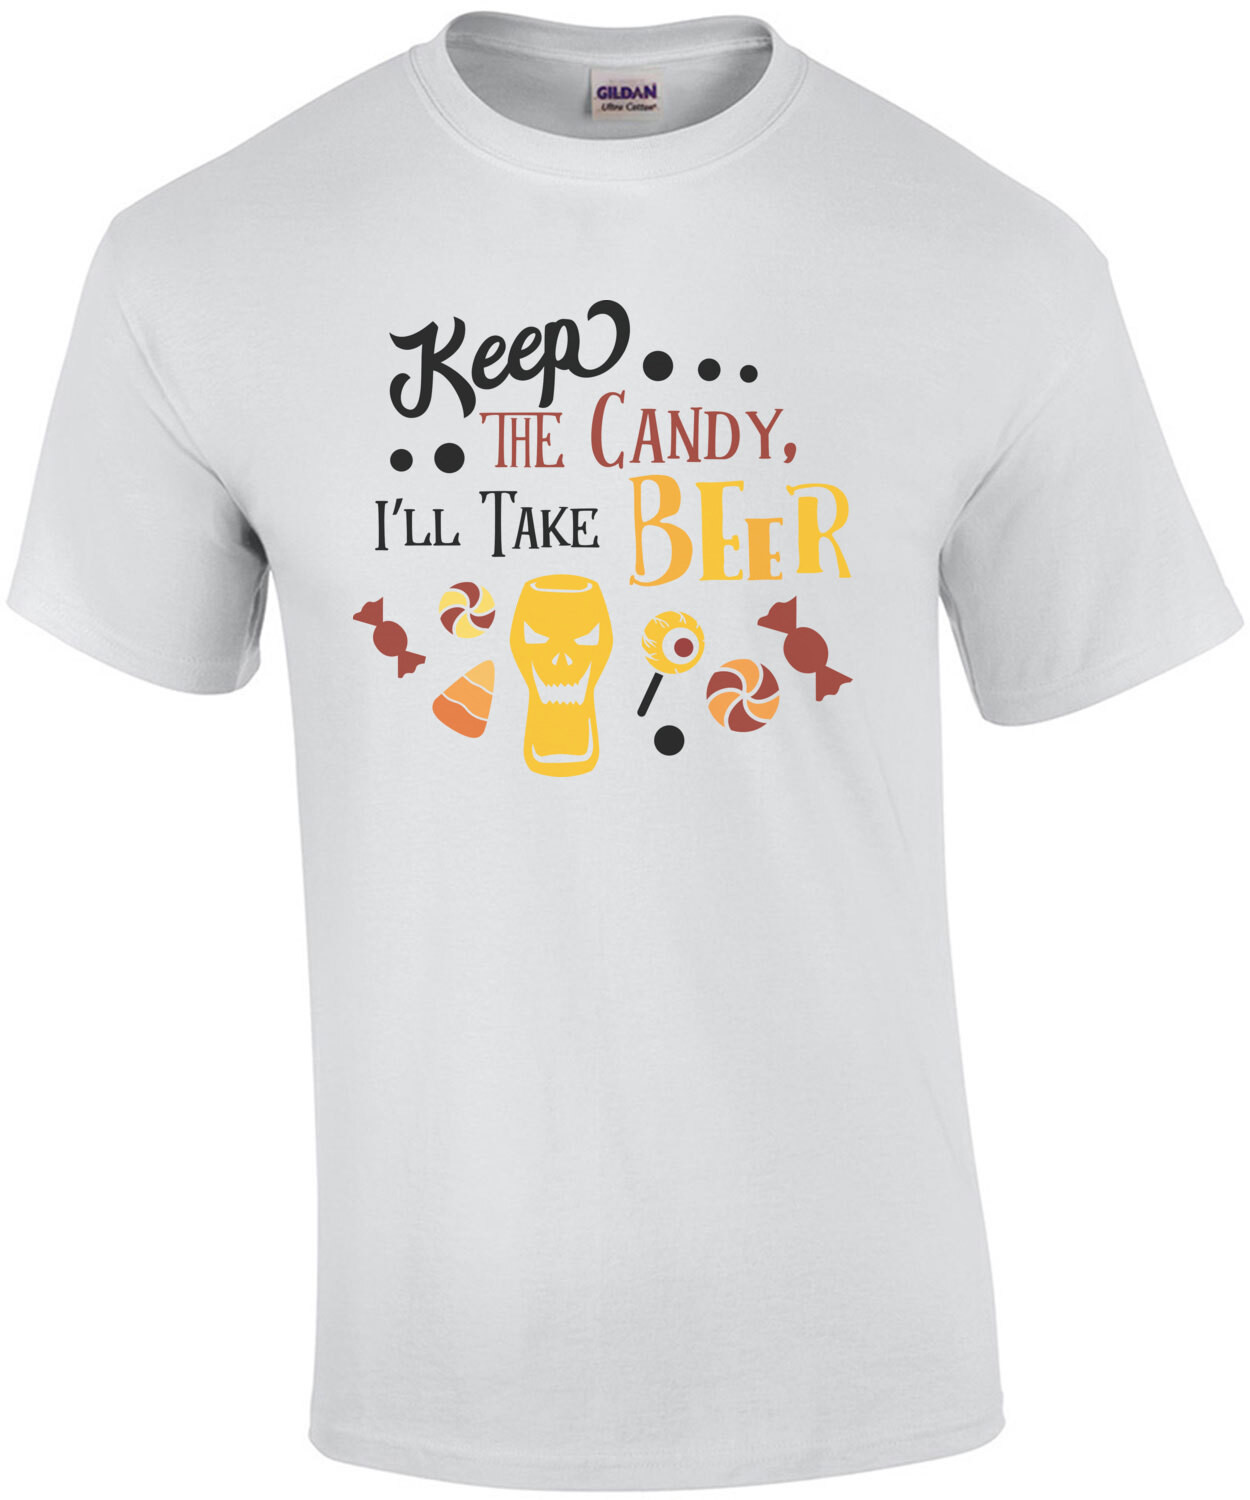 Keep The Candy... I'll Take The Beer! - Halloween Drinking Tee